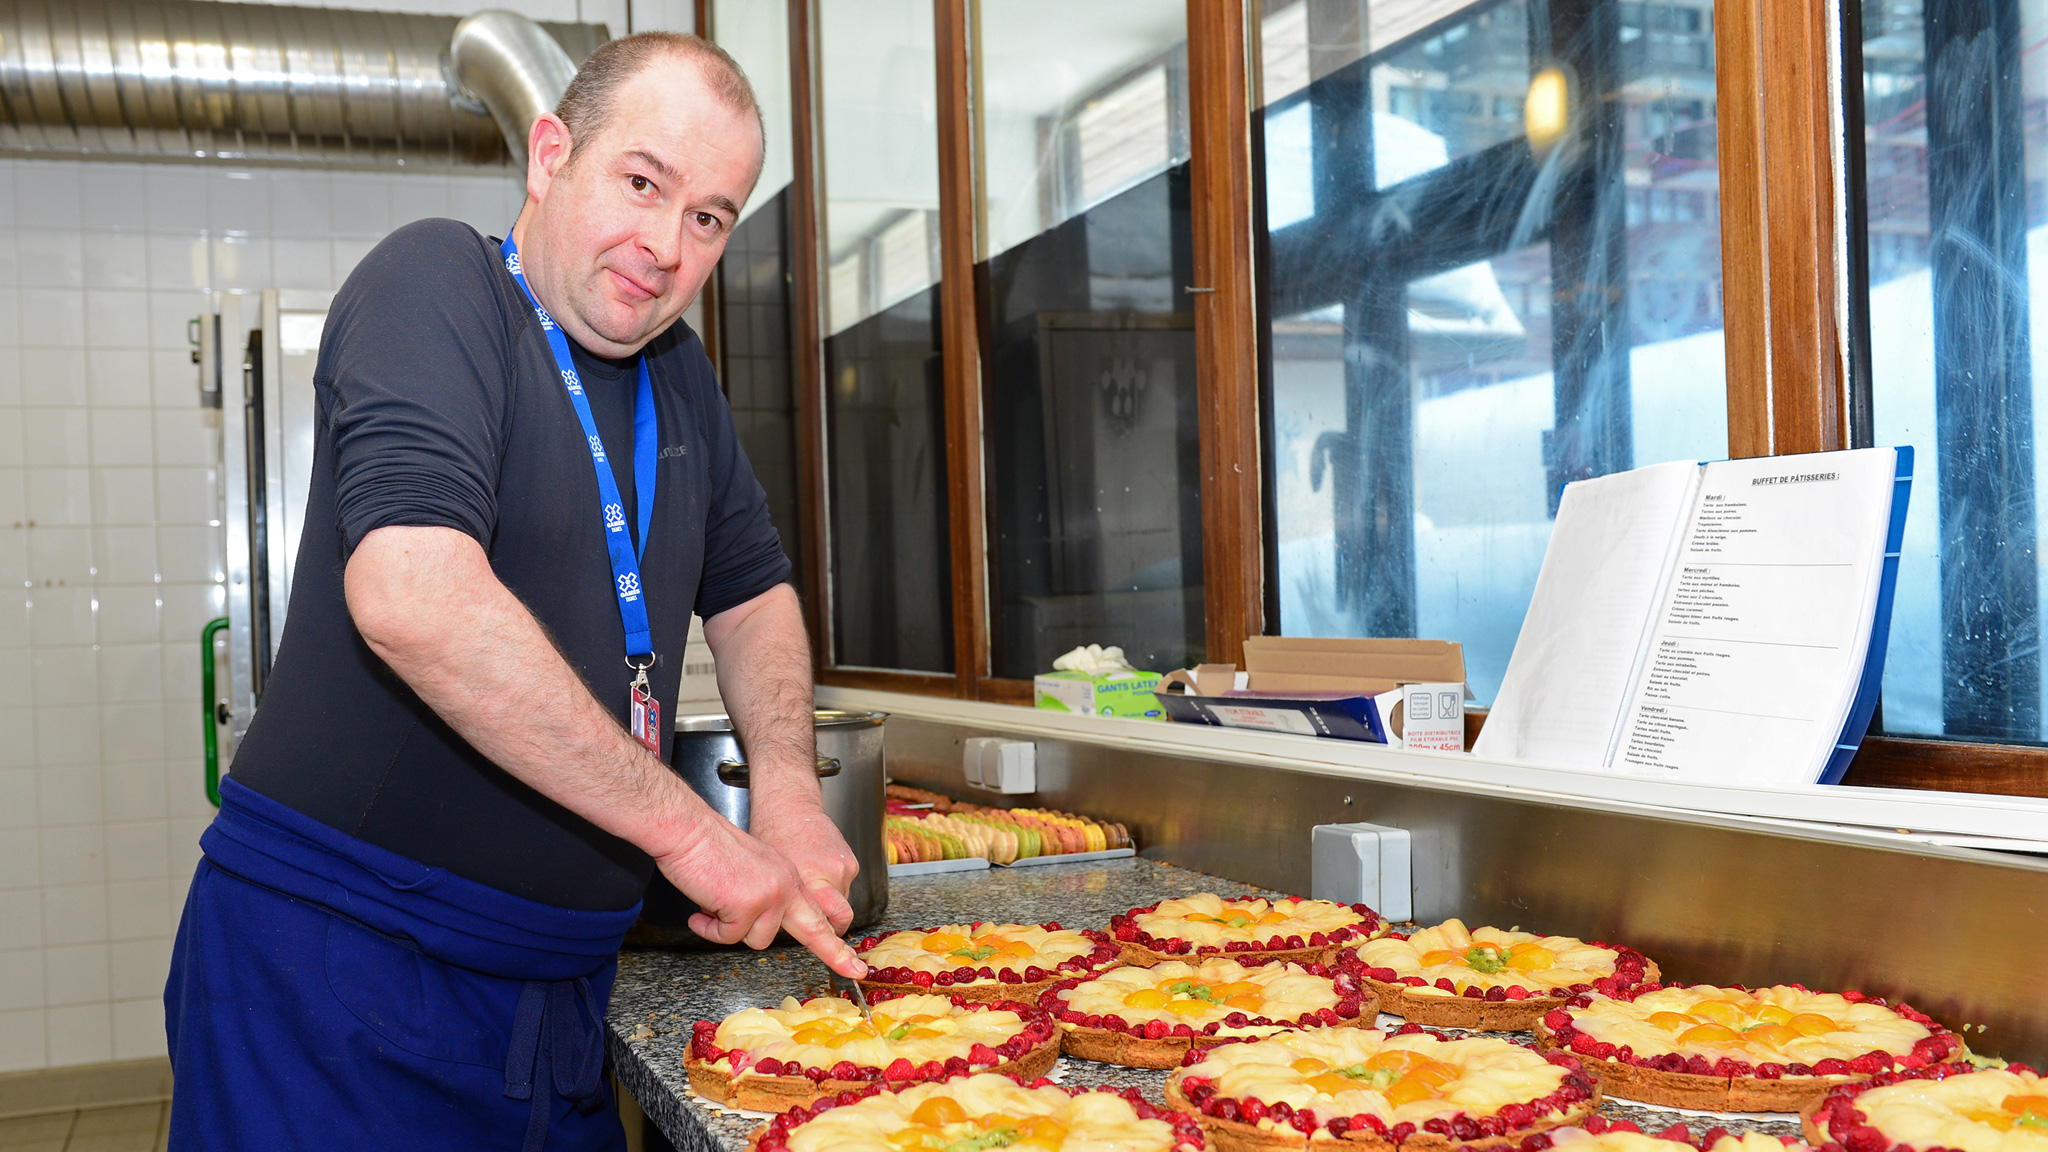 Hotel Diva Patisserie Cook Jean-Charles Gautier slices into a fruit tart at X Games Tignes.